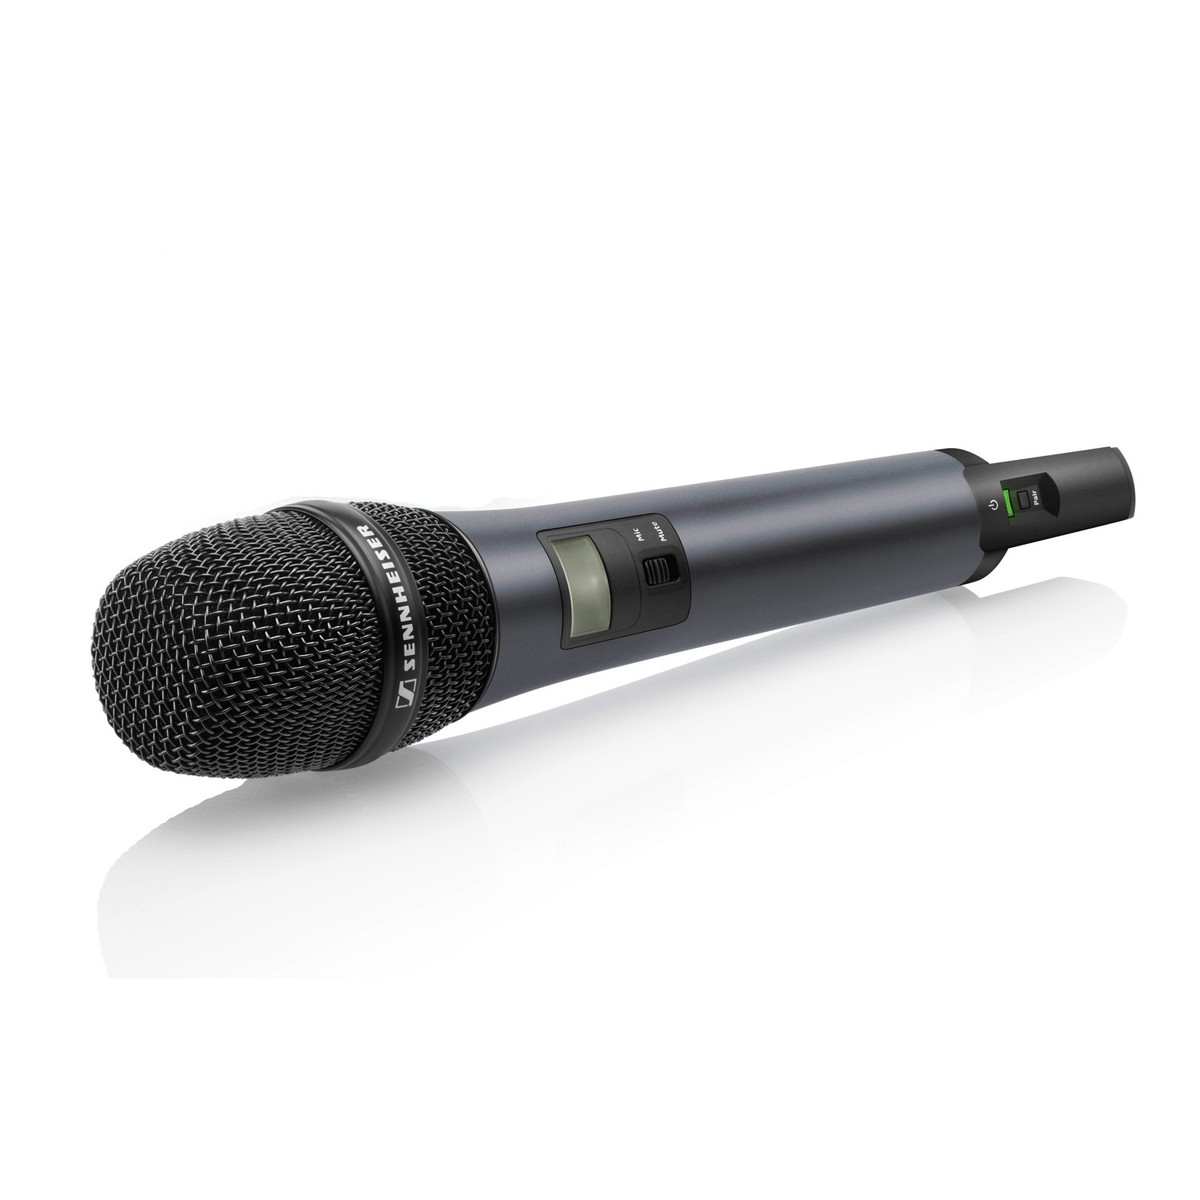 sennheiser ew d1 835s digital wireless handheld microphone system at gear4music. Black Bedroom Furniture Sets. Home Design Ideas